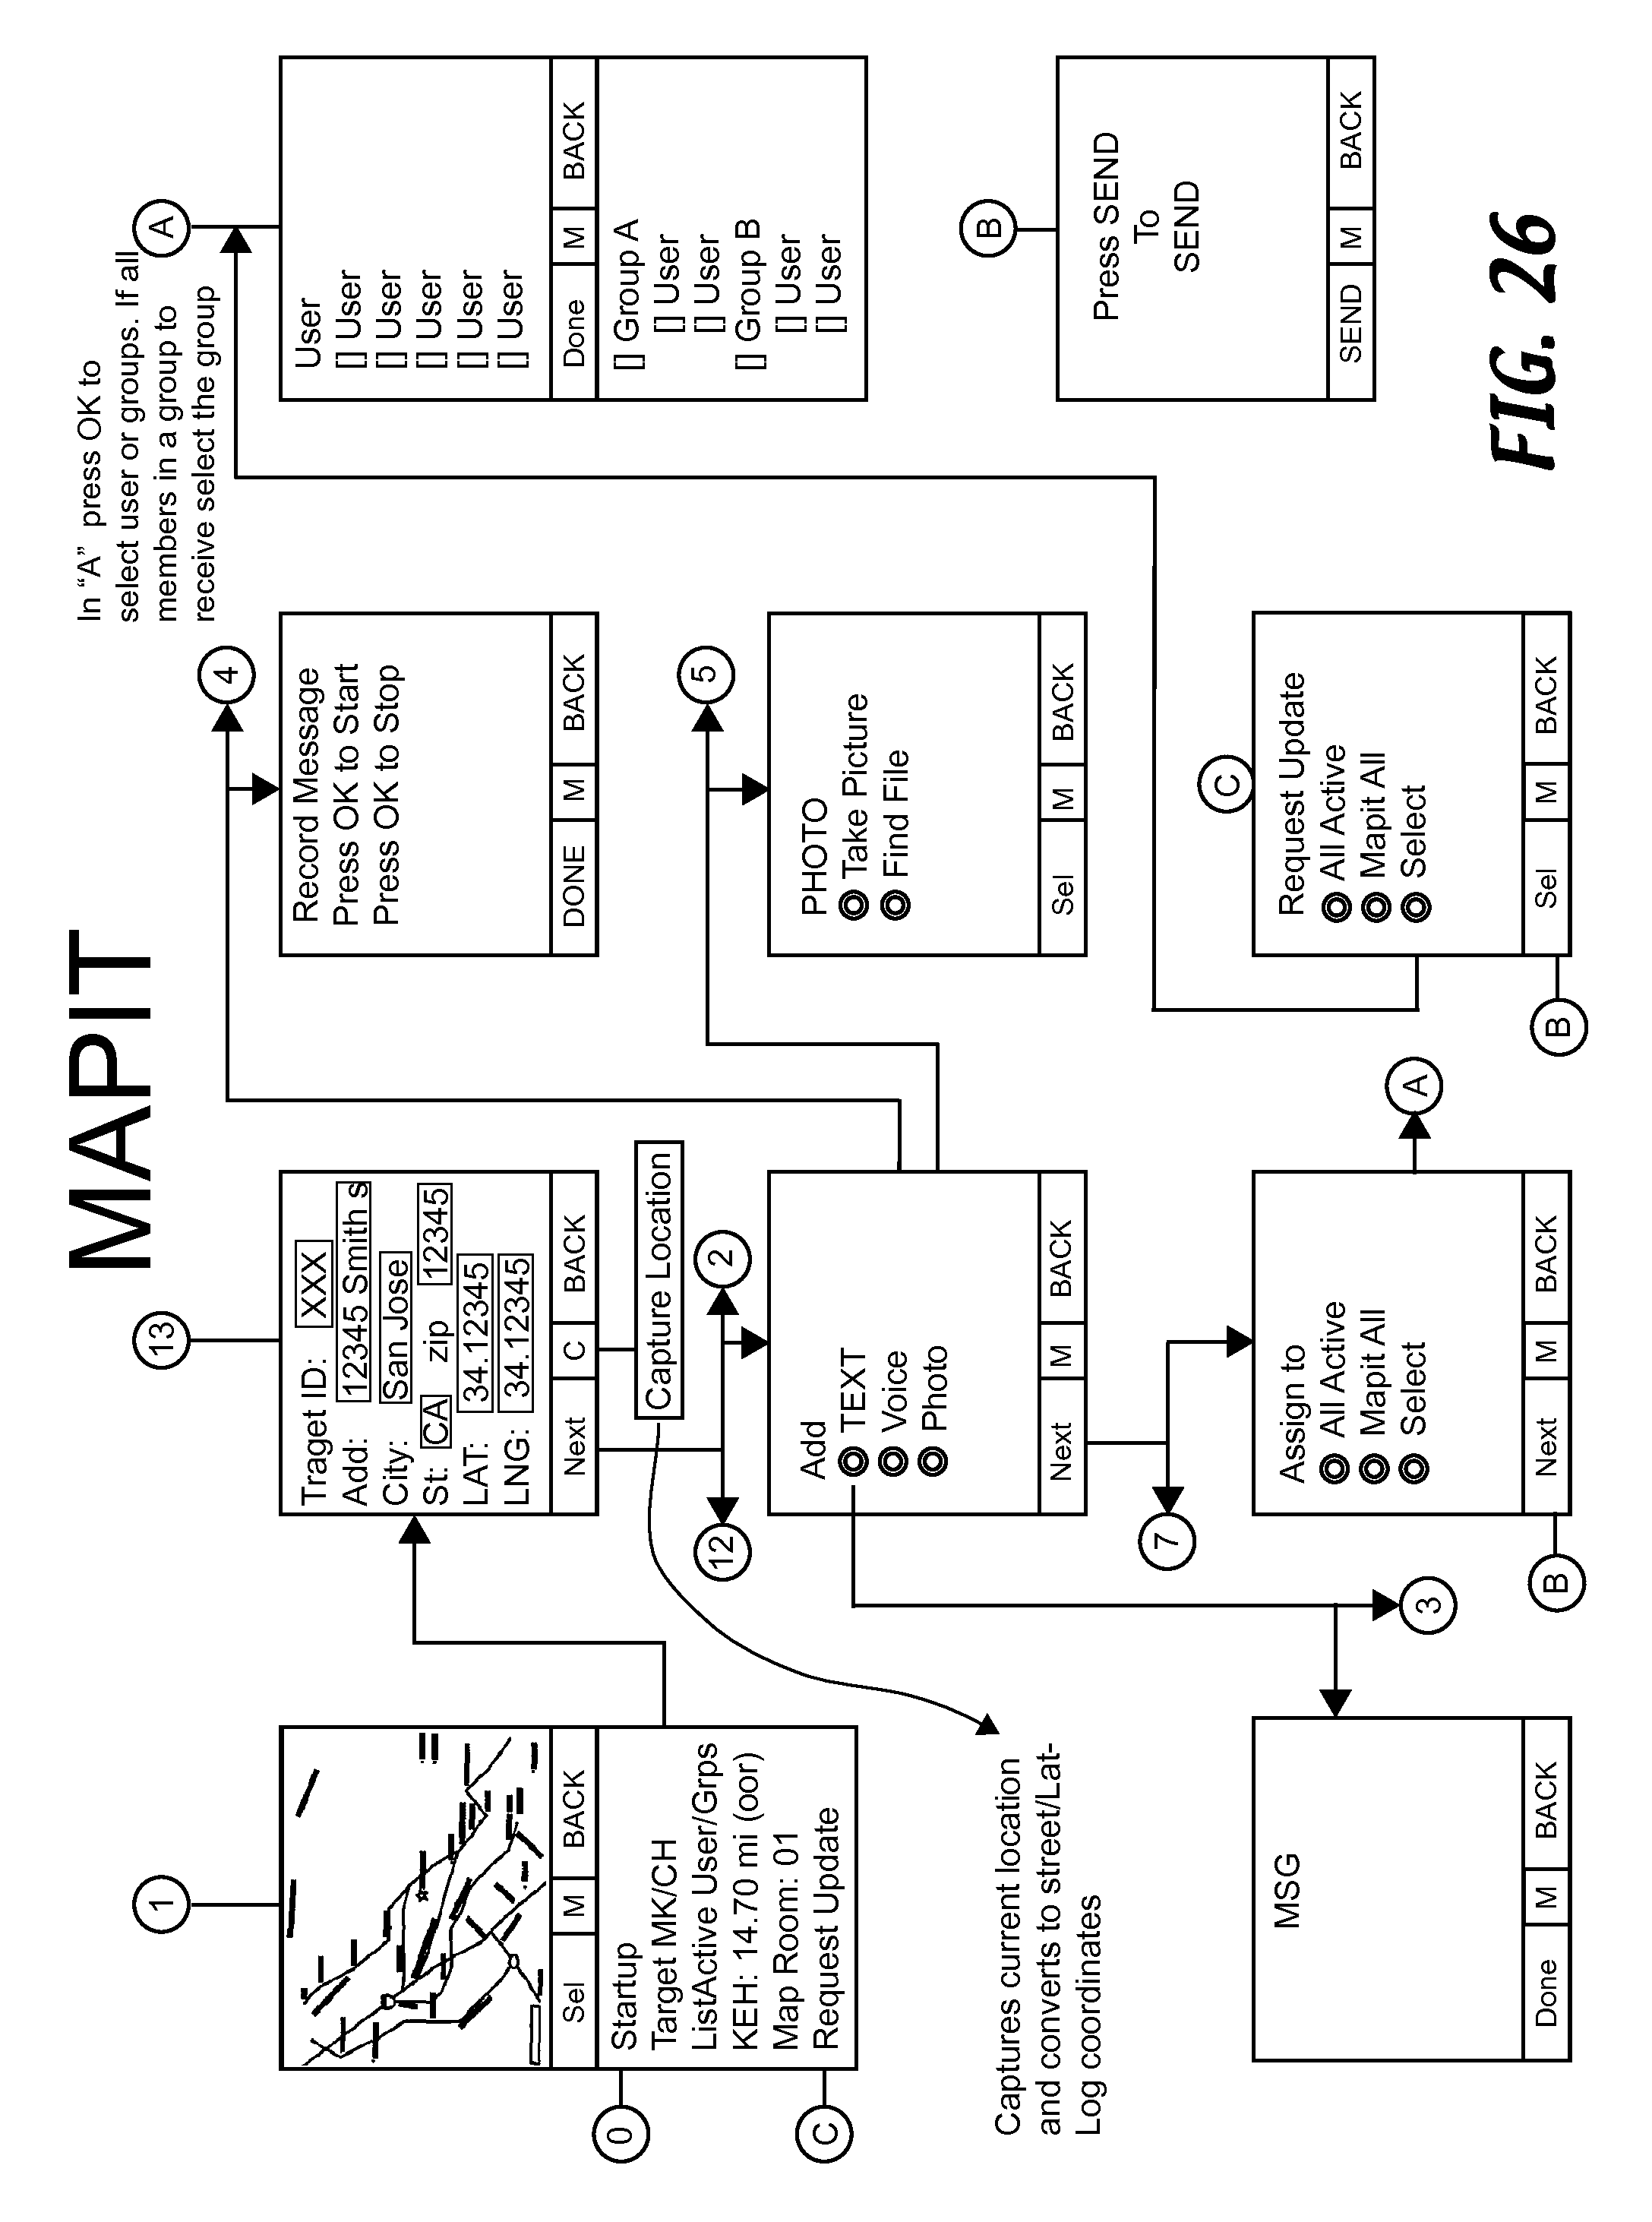 us20130144523a1 - methods and systems for sharing position data and tracing  paths between mobile-device users - google patents